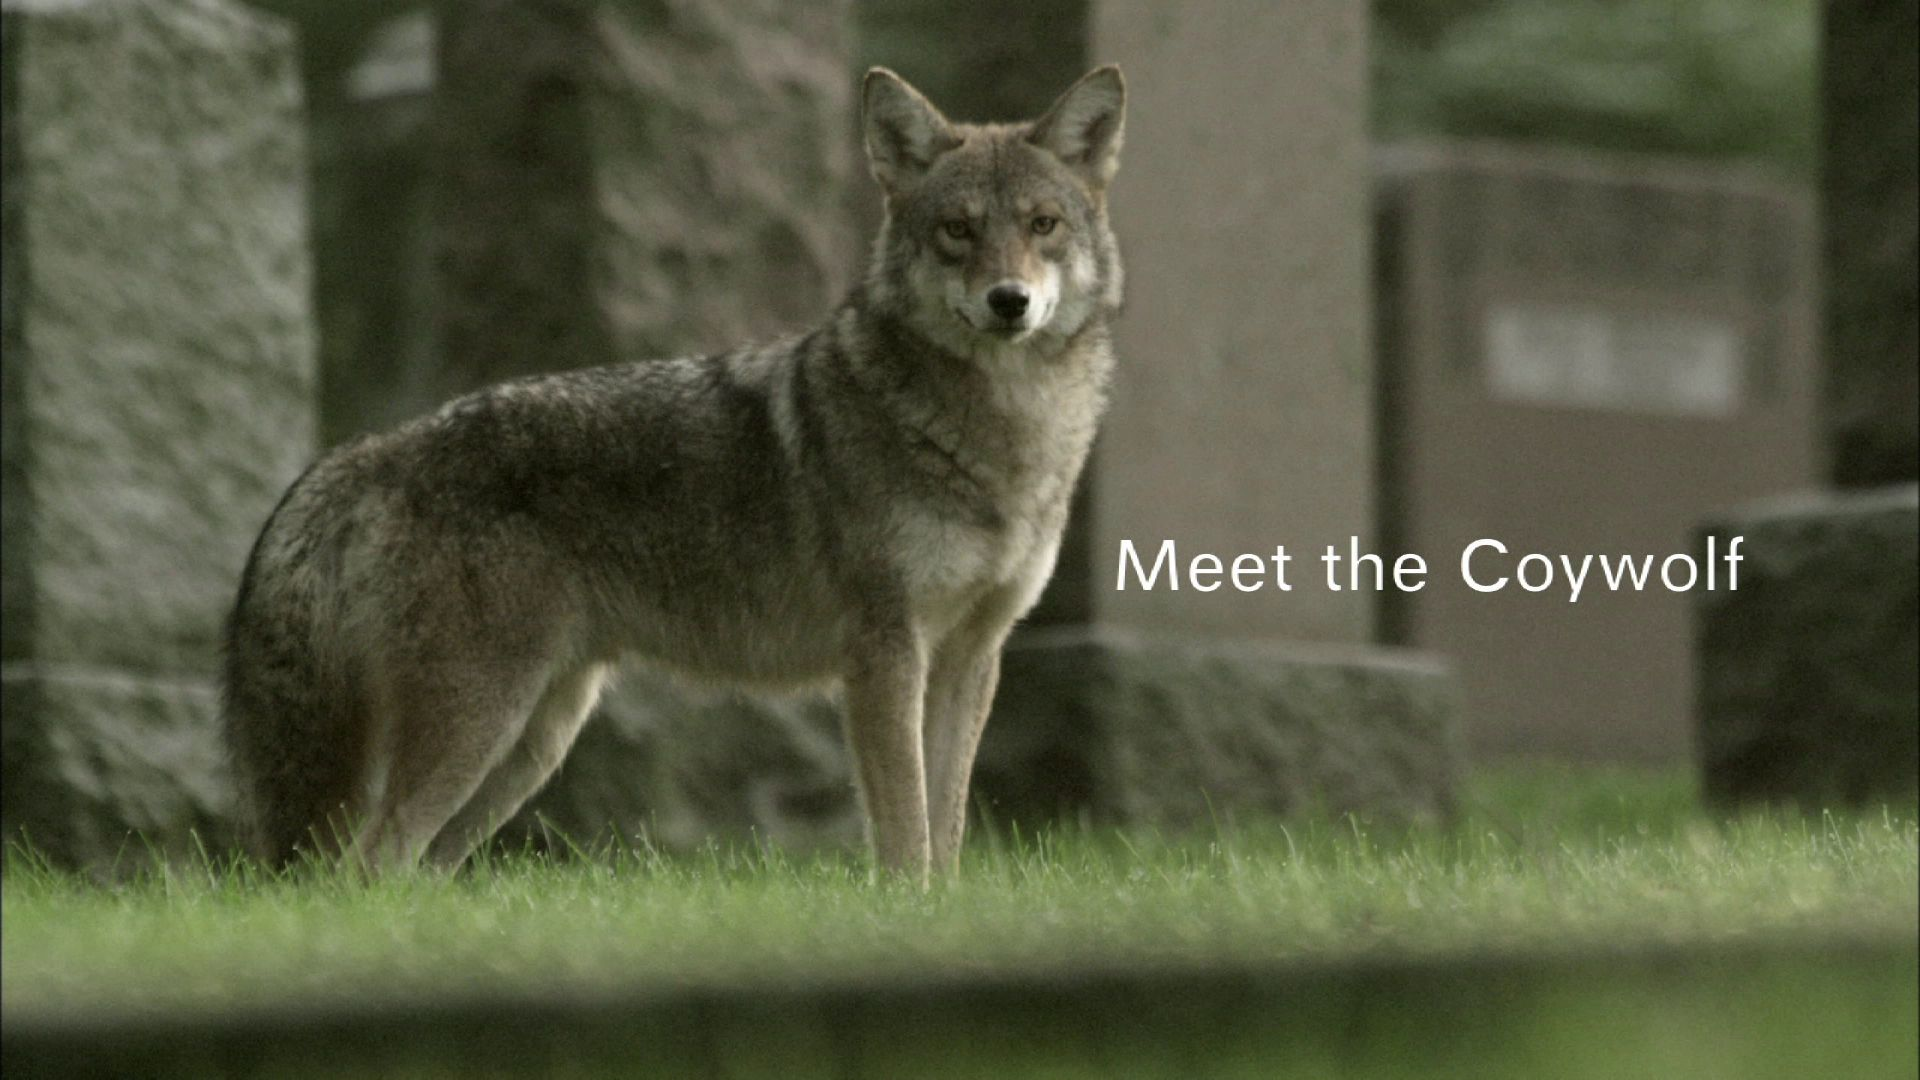 meet the coywolf trailer park